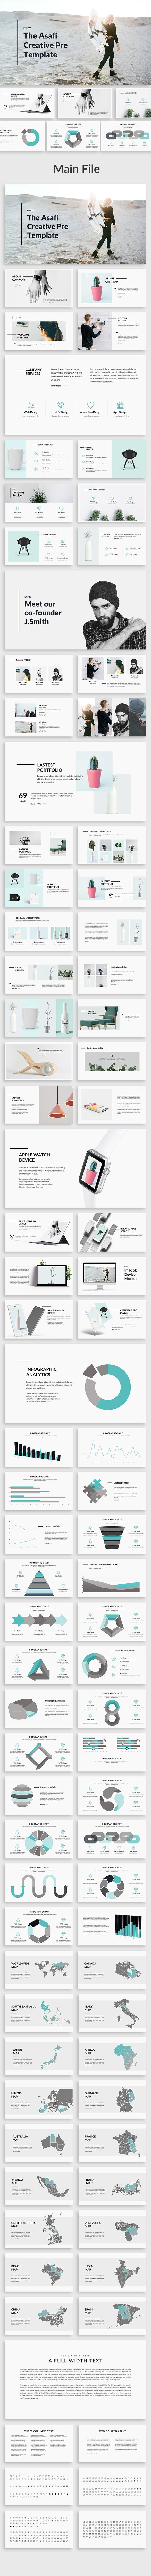 Asafi Minimal Keynote Template — Keynote KEY #corporate #presentation • Download ➝ https://graphicriver.net/item/asafi-minimal-keynote-template/19722816?ref=pxcr